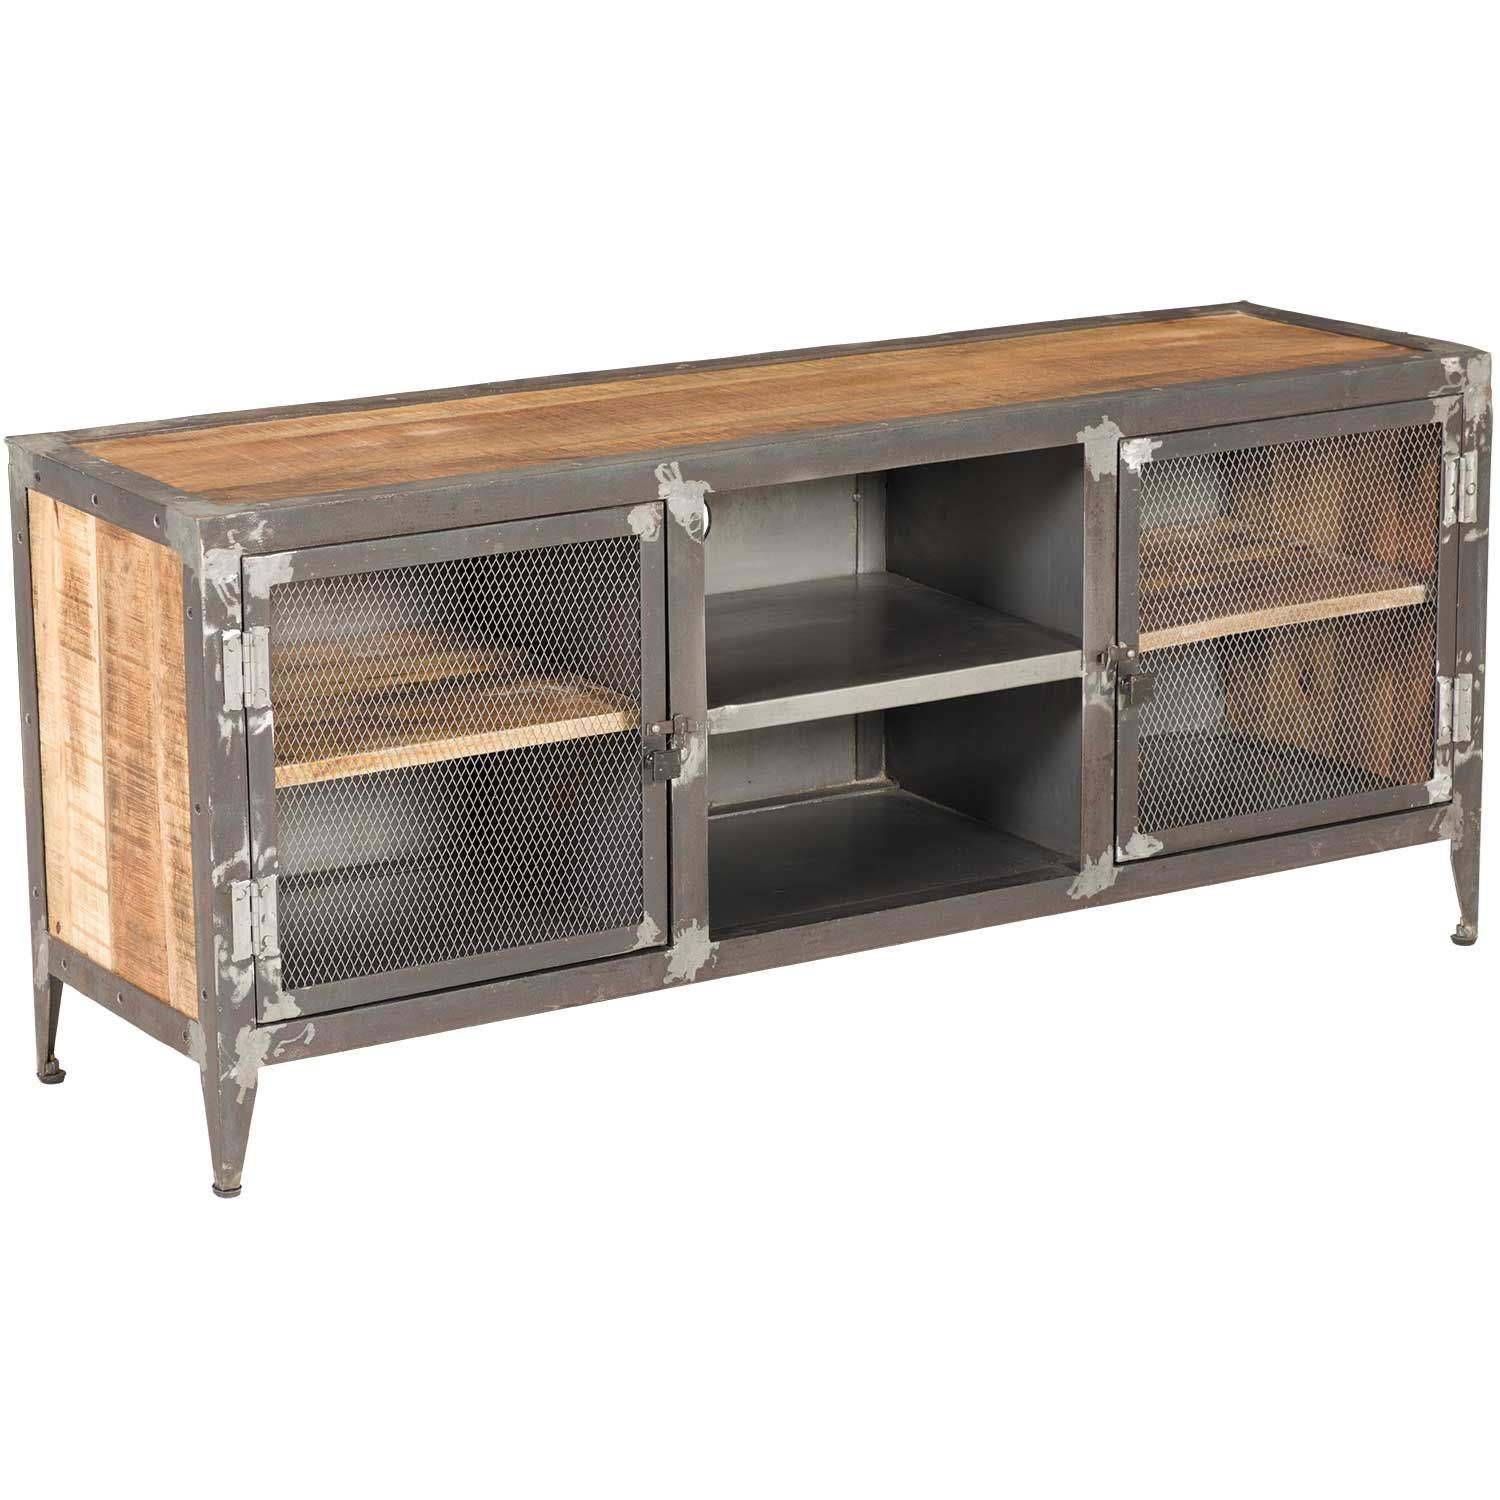 Vintage industrial iron and wood tv stand sie a9141 afw for Sideboard 120